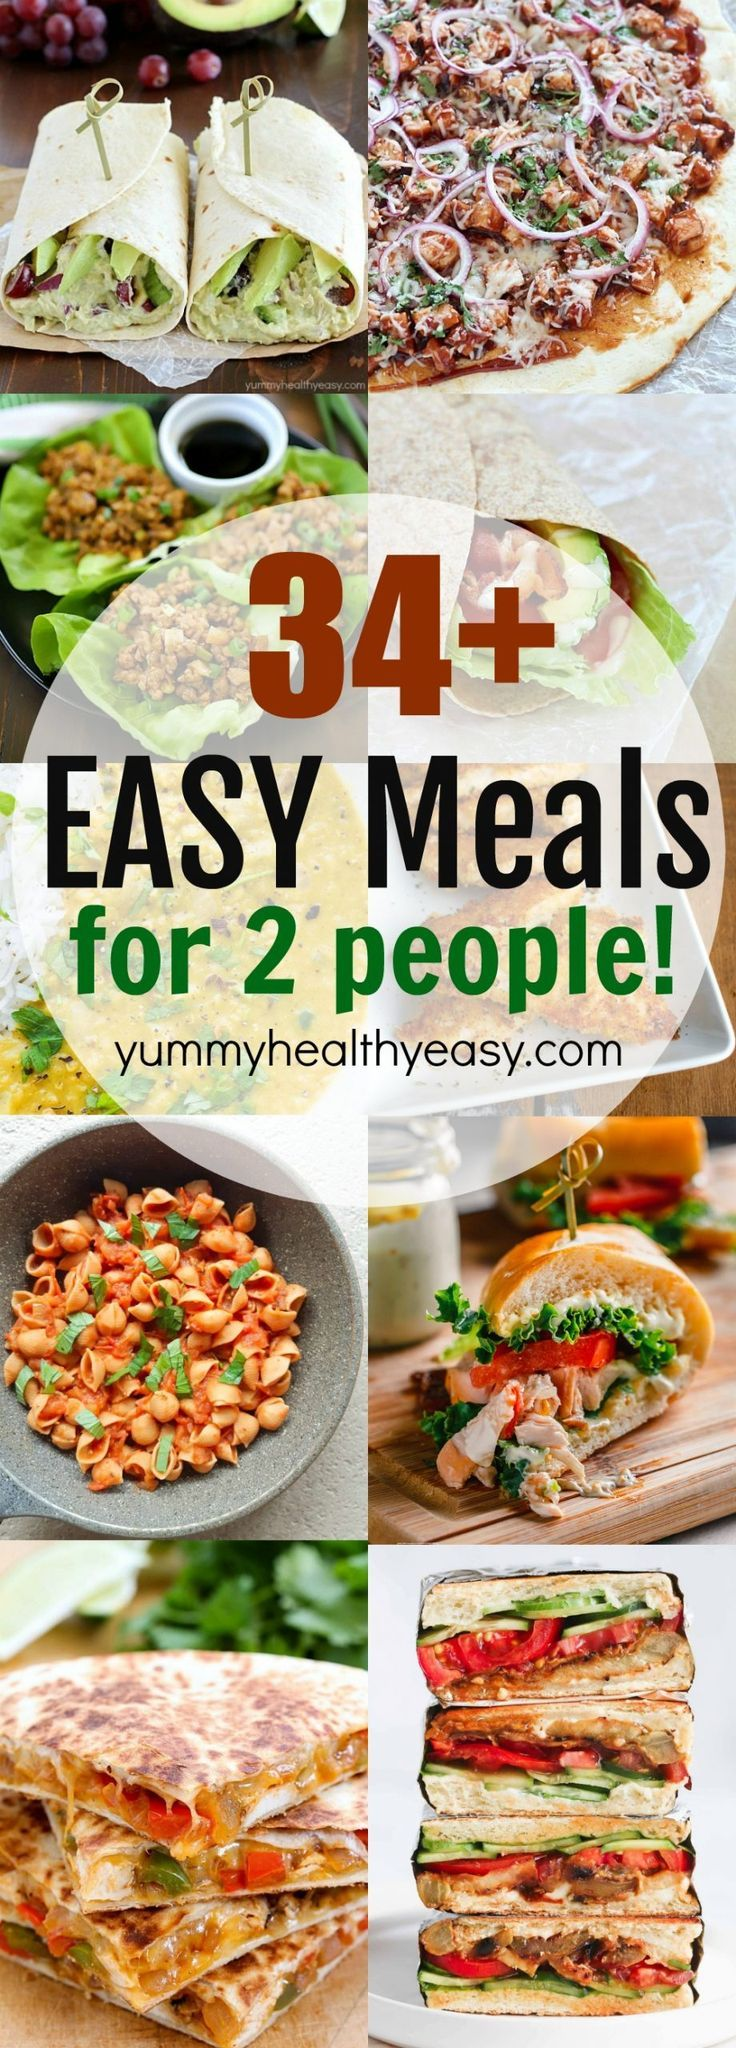 34 Easy Meals For Two Easy Meals Easy Meals For Two Healthy Meals For Two